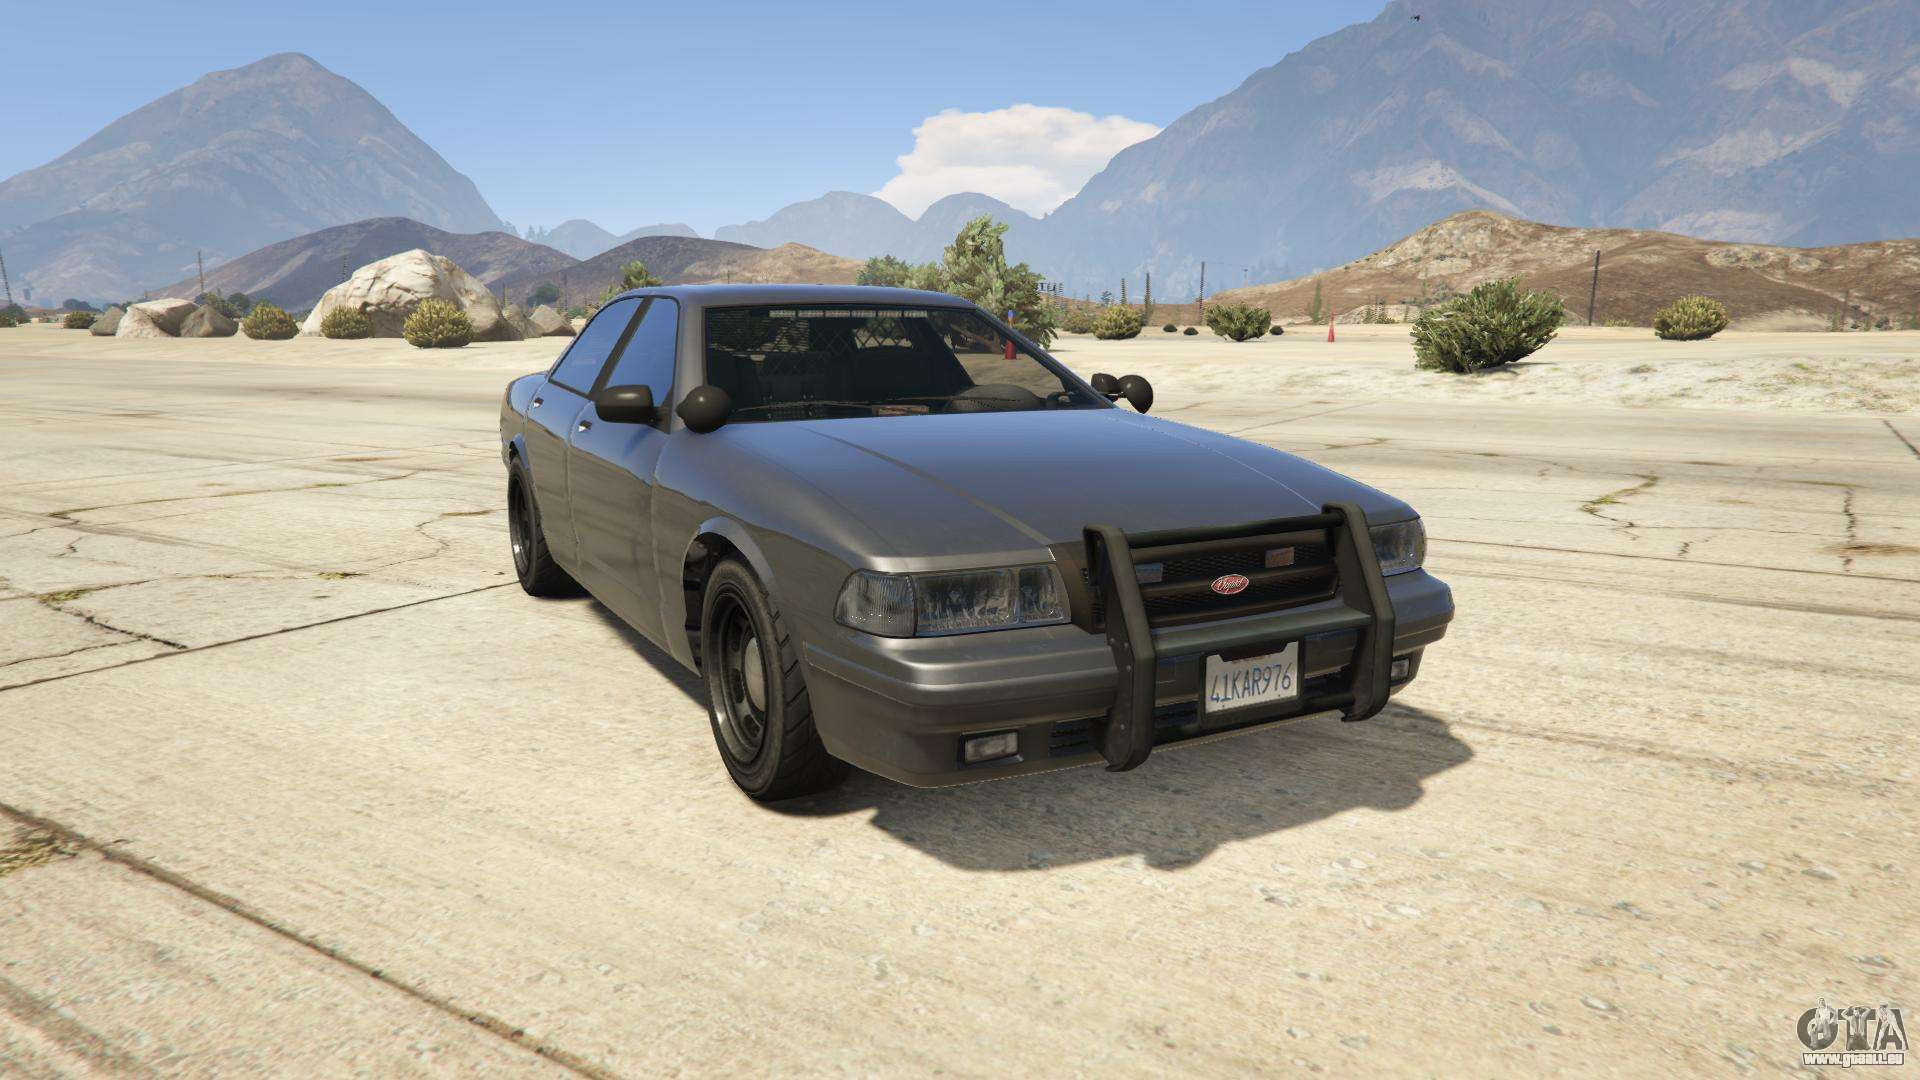 GTA 5 Vapid Unmarked Cruiser - vue de face